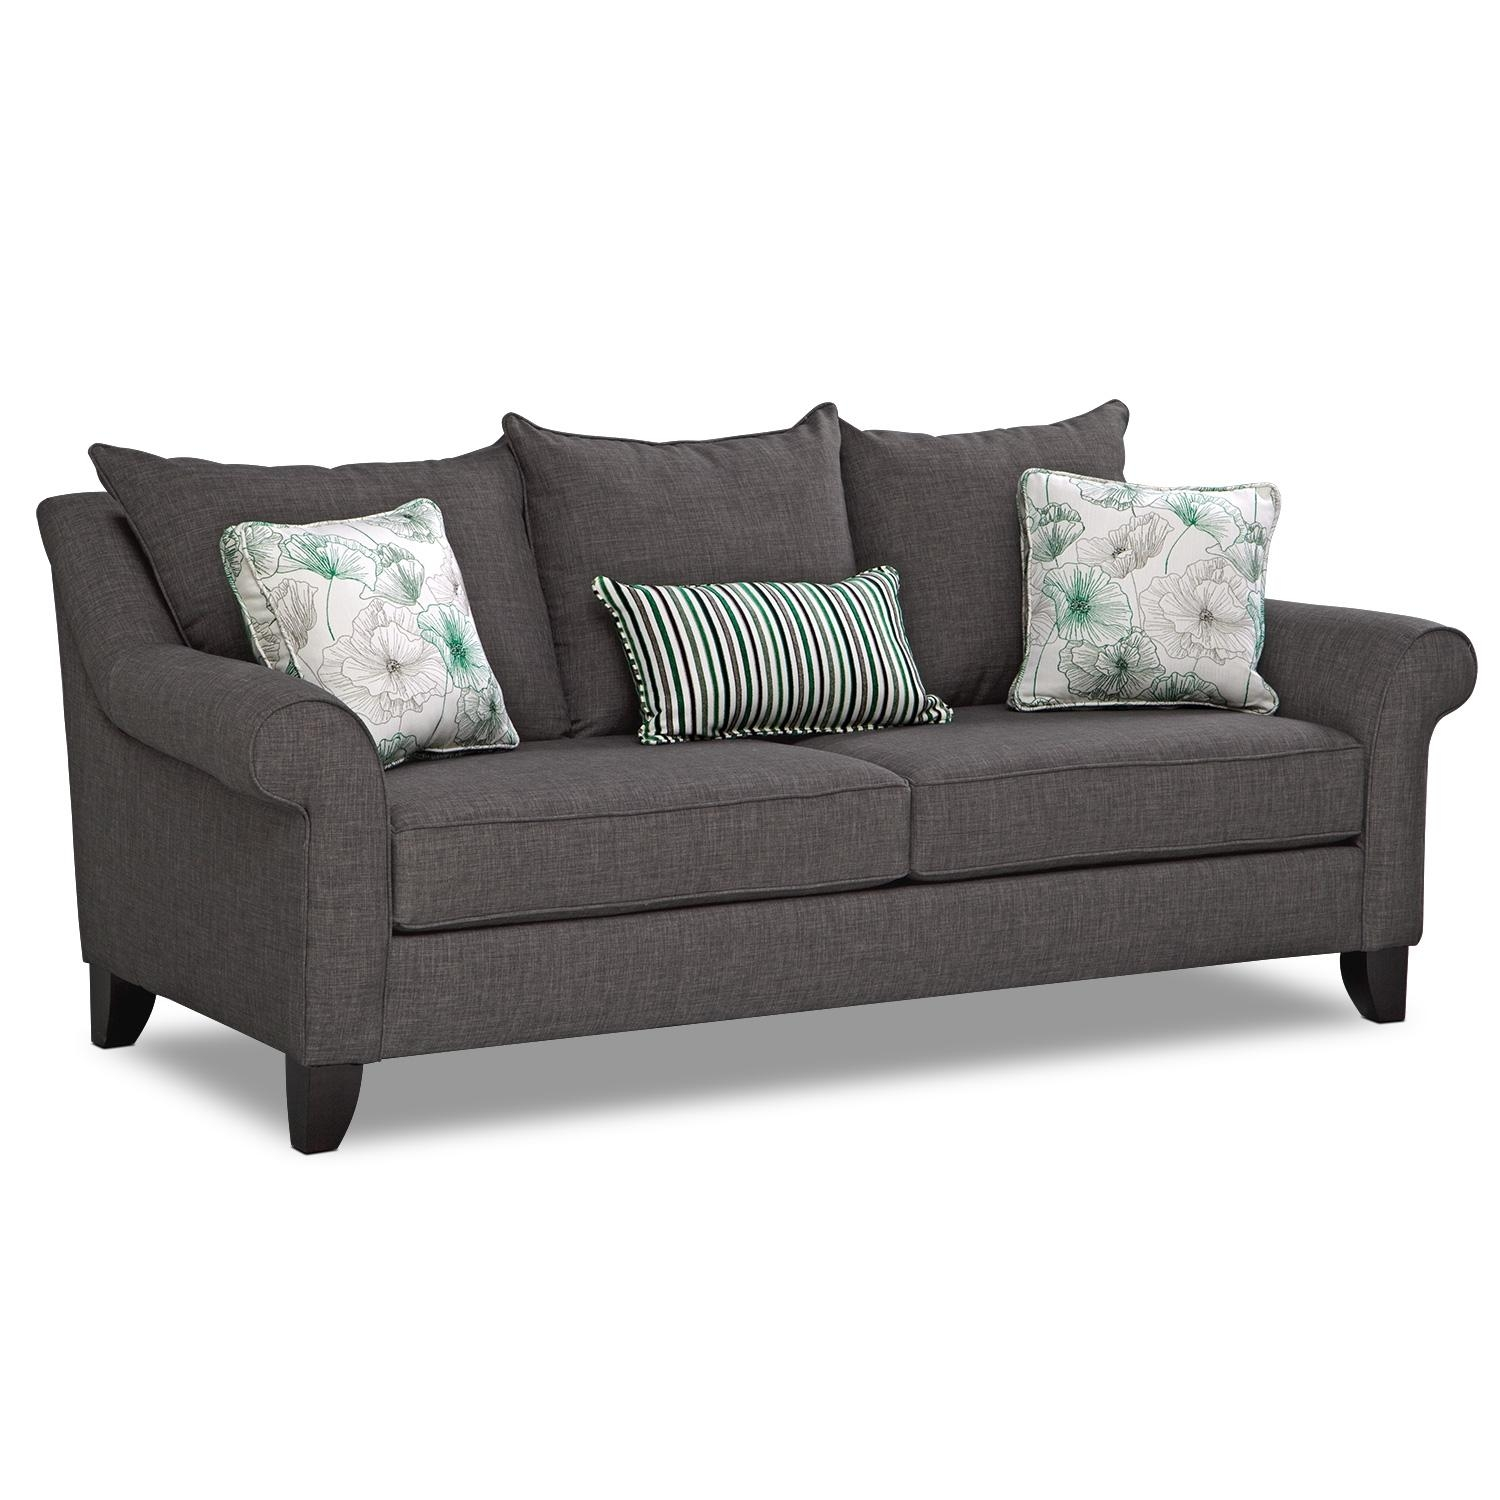 Fancy Value City Furniture Sleeper Sofa 38 For Your Davis Sleeper With Regard To Davis Sleeper Sofas (Image 15 of 20)